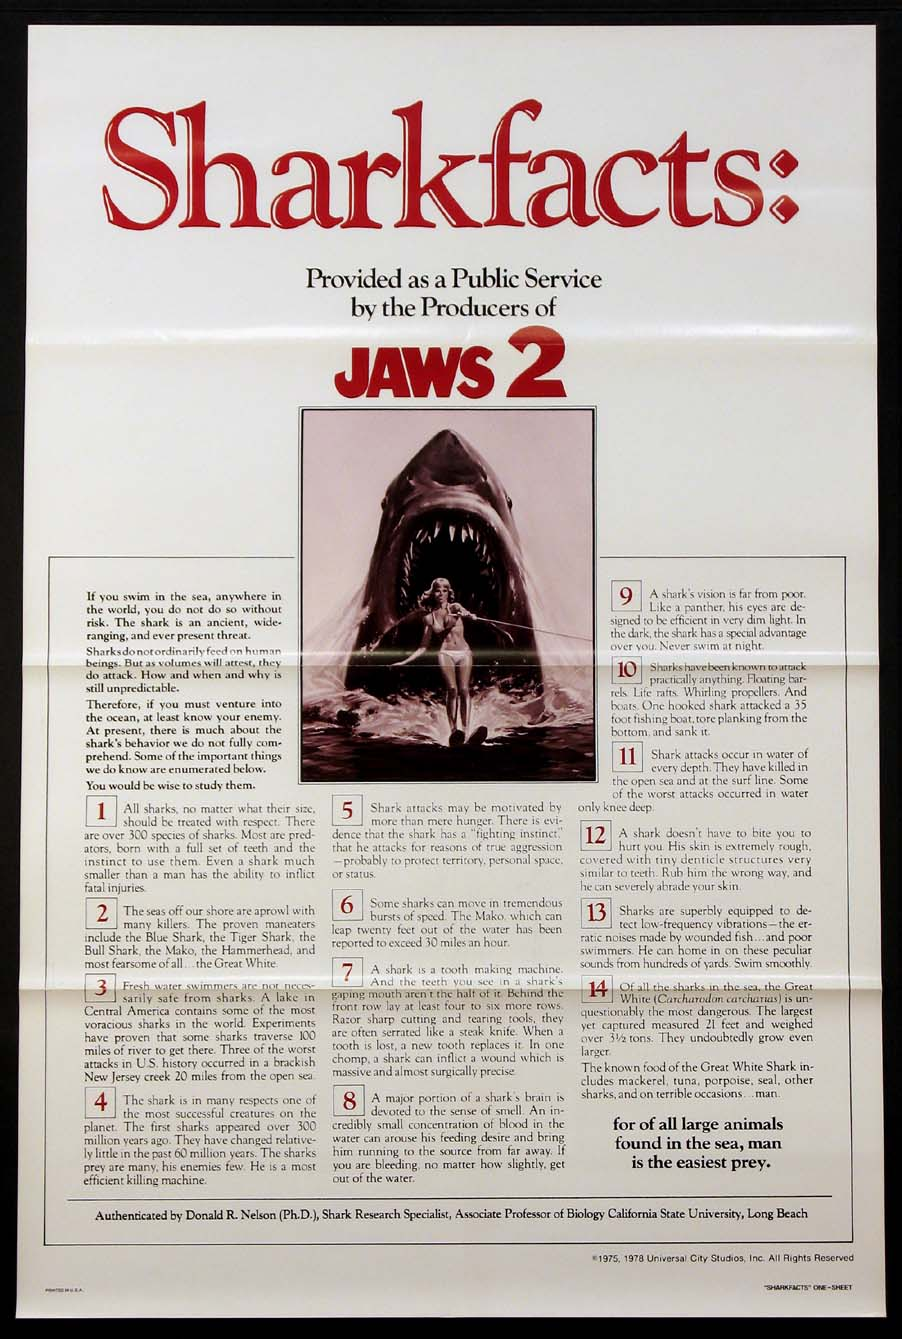 JAWS 2 - Sharkfacts Advance @ FilmPosters.com